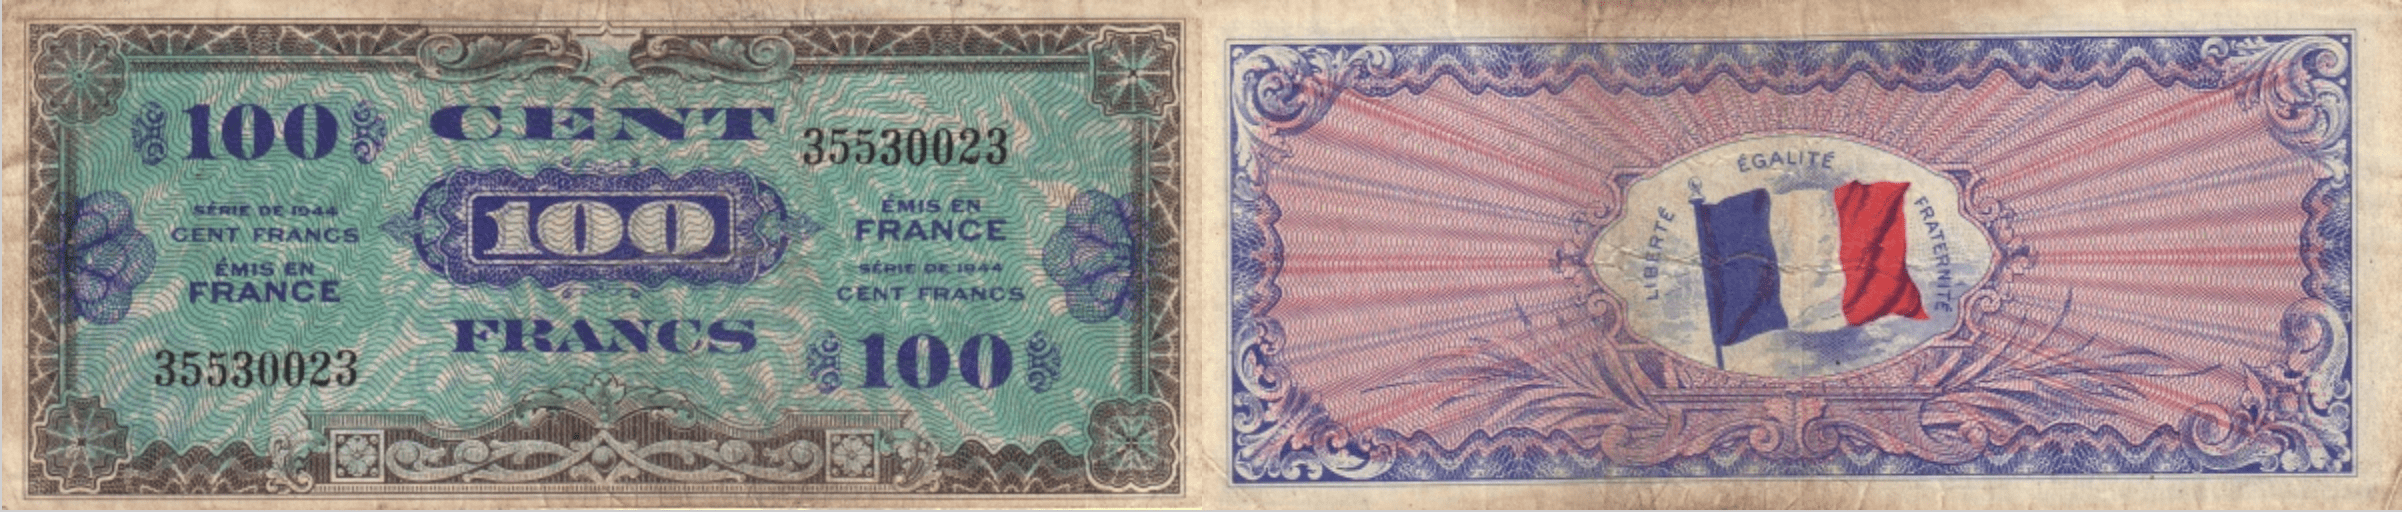 There Were Two Issues For Use In Allied Controlled Areas Of Occupation The First Issue Is Known As Supplemental And Has A French Flag On Reverse